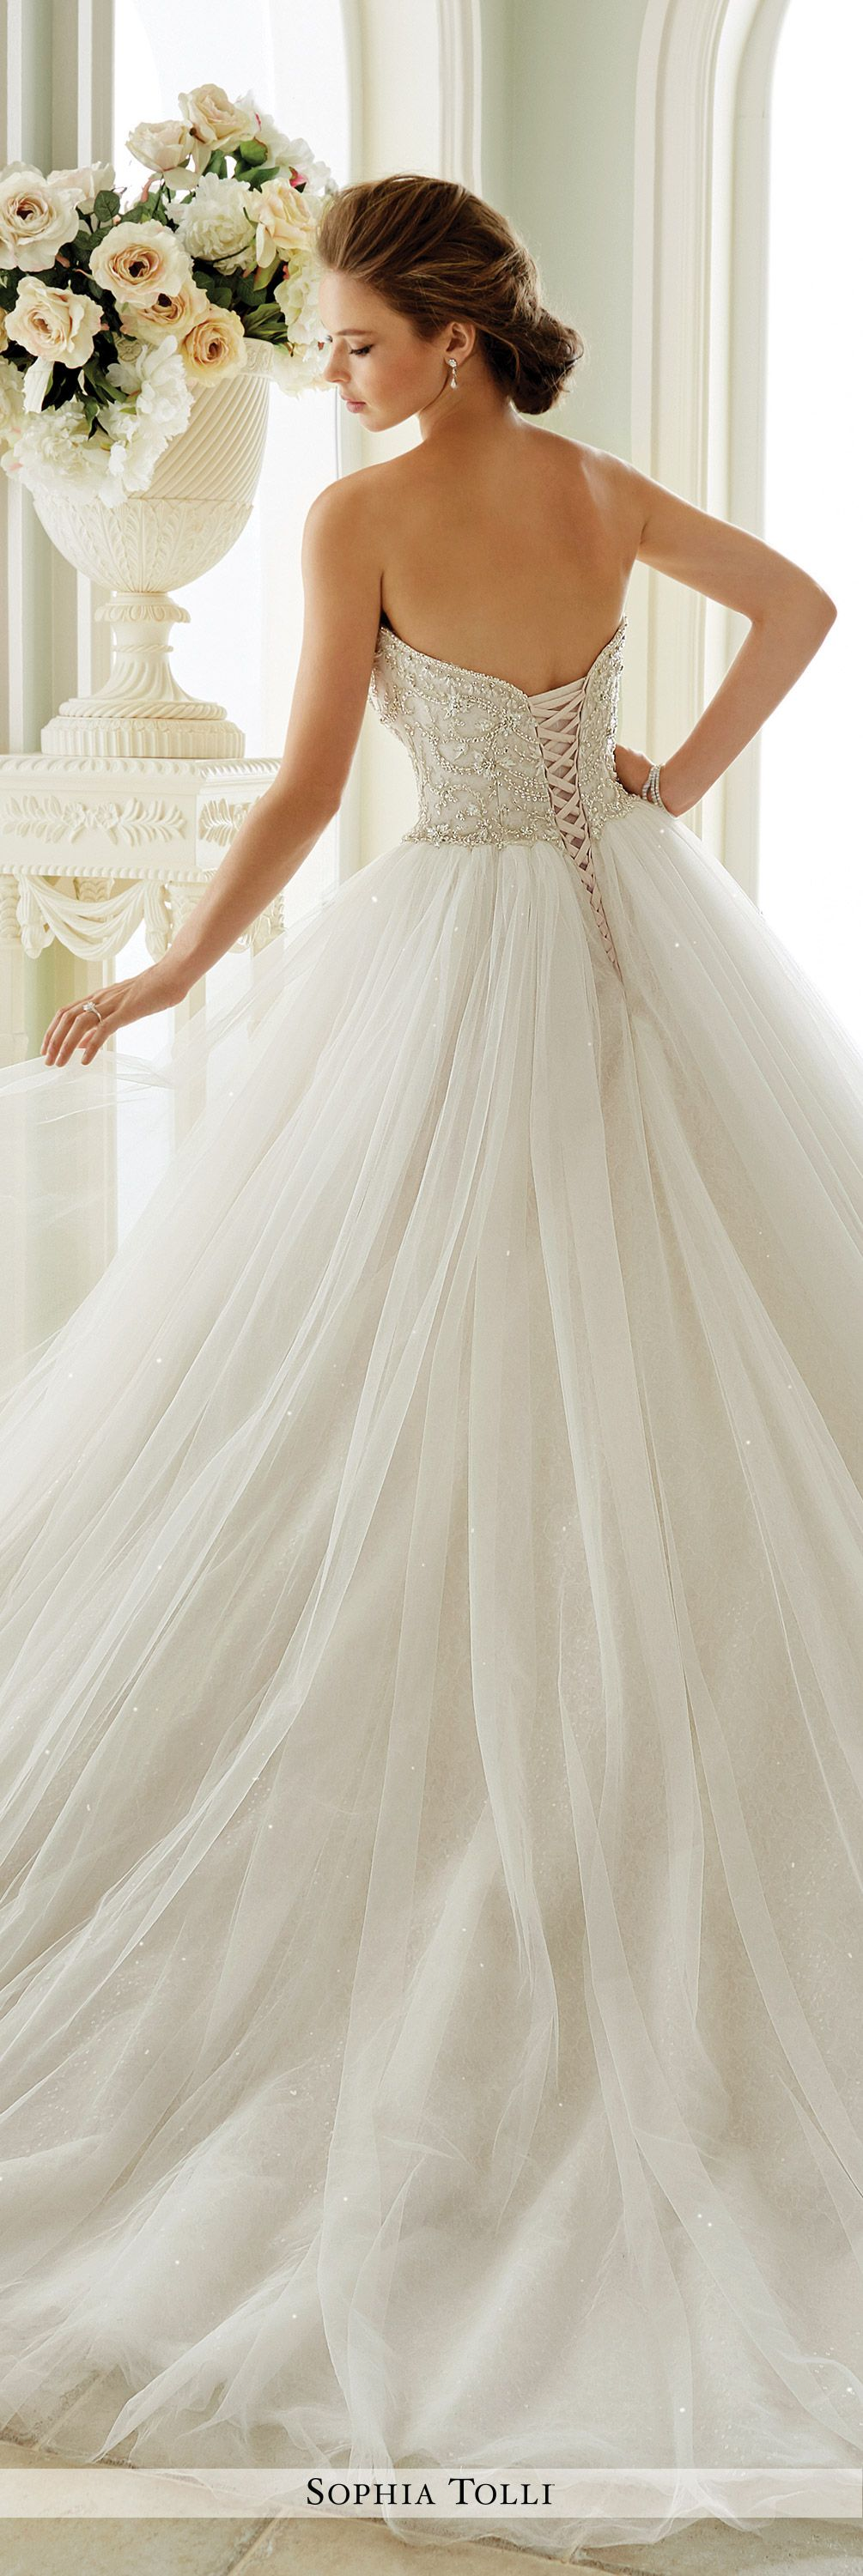 tulle wedding gown sophia tolli y21663 tulle balls